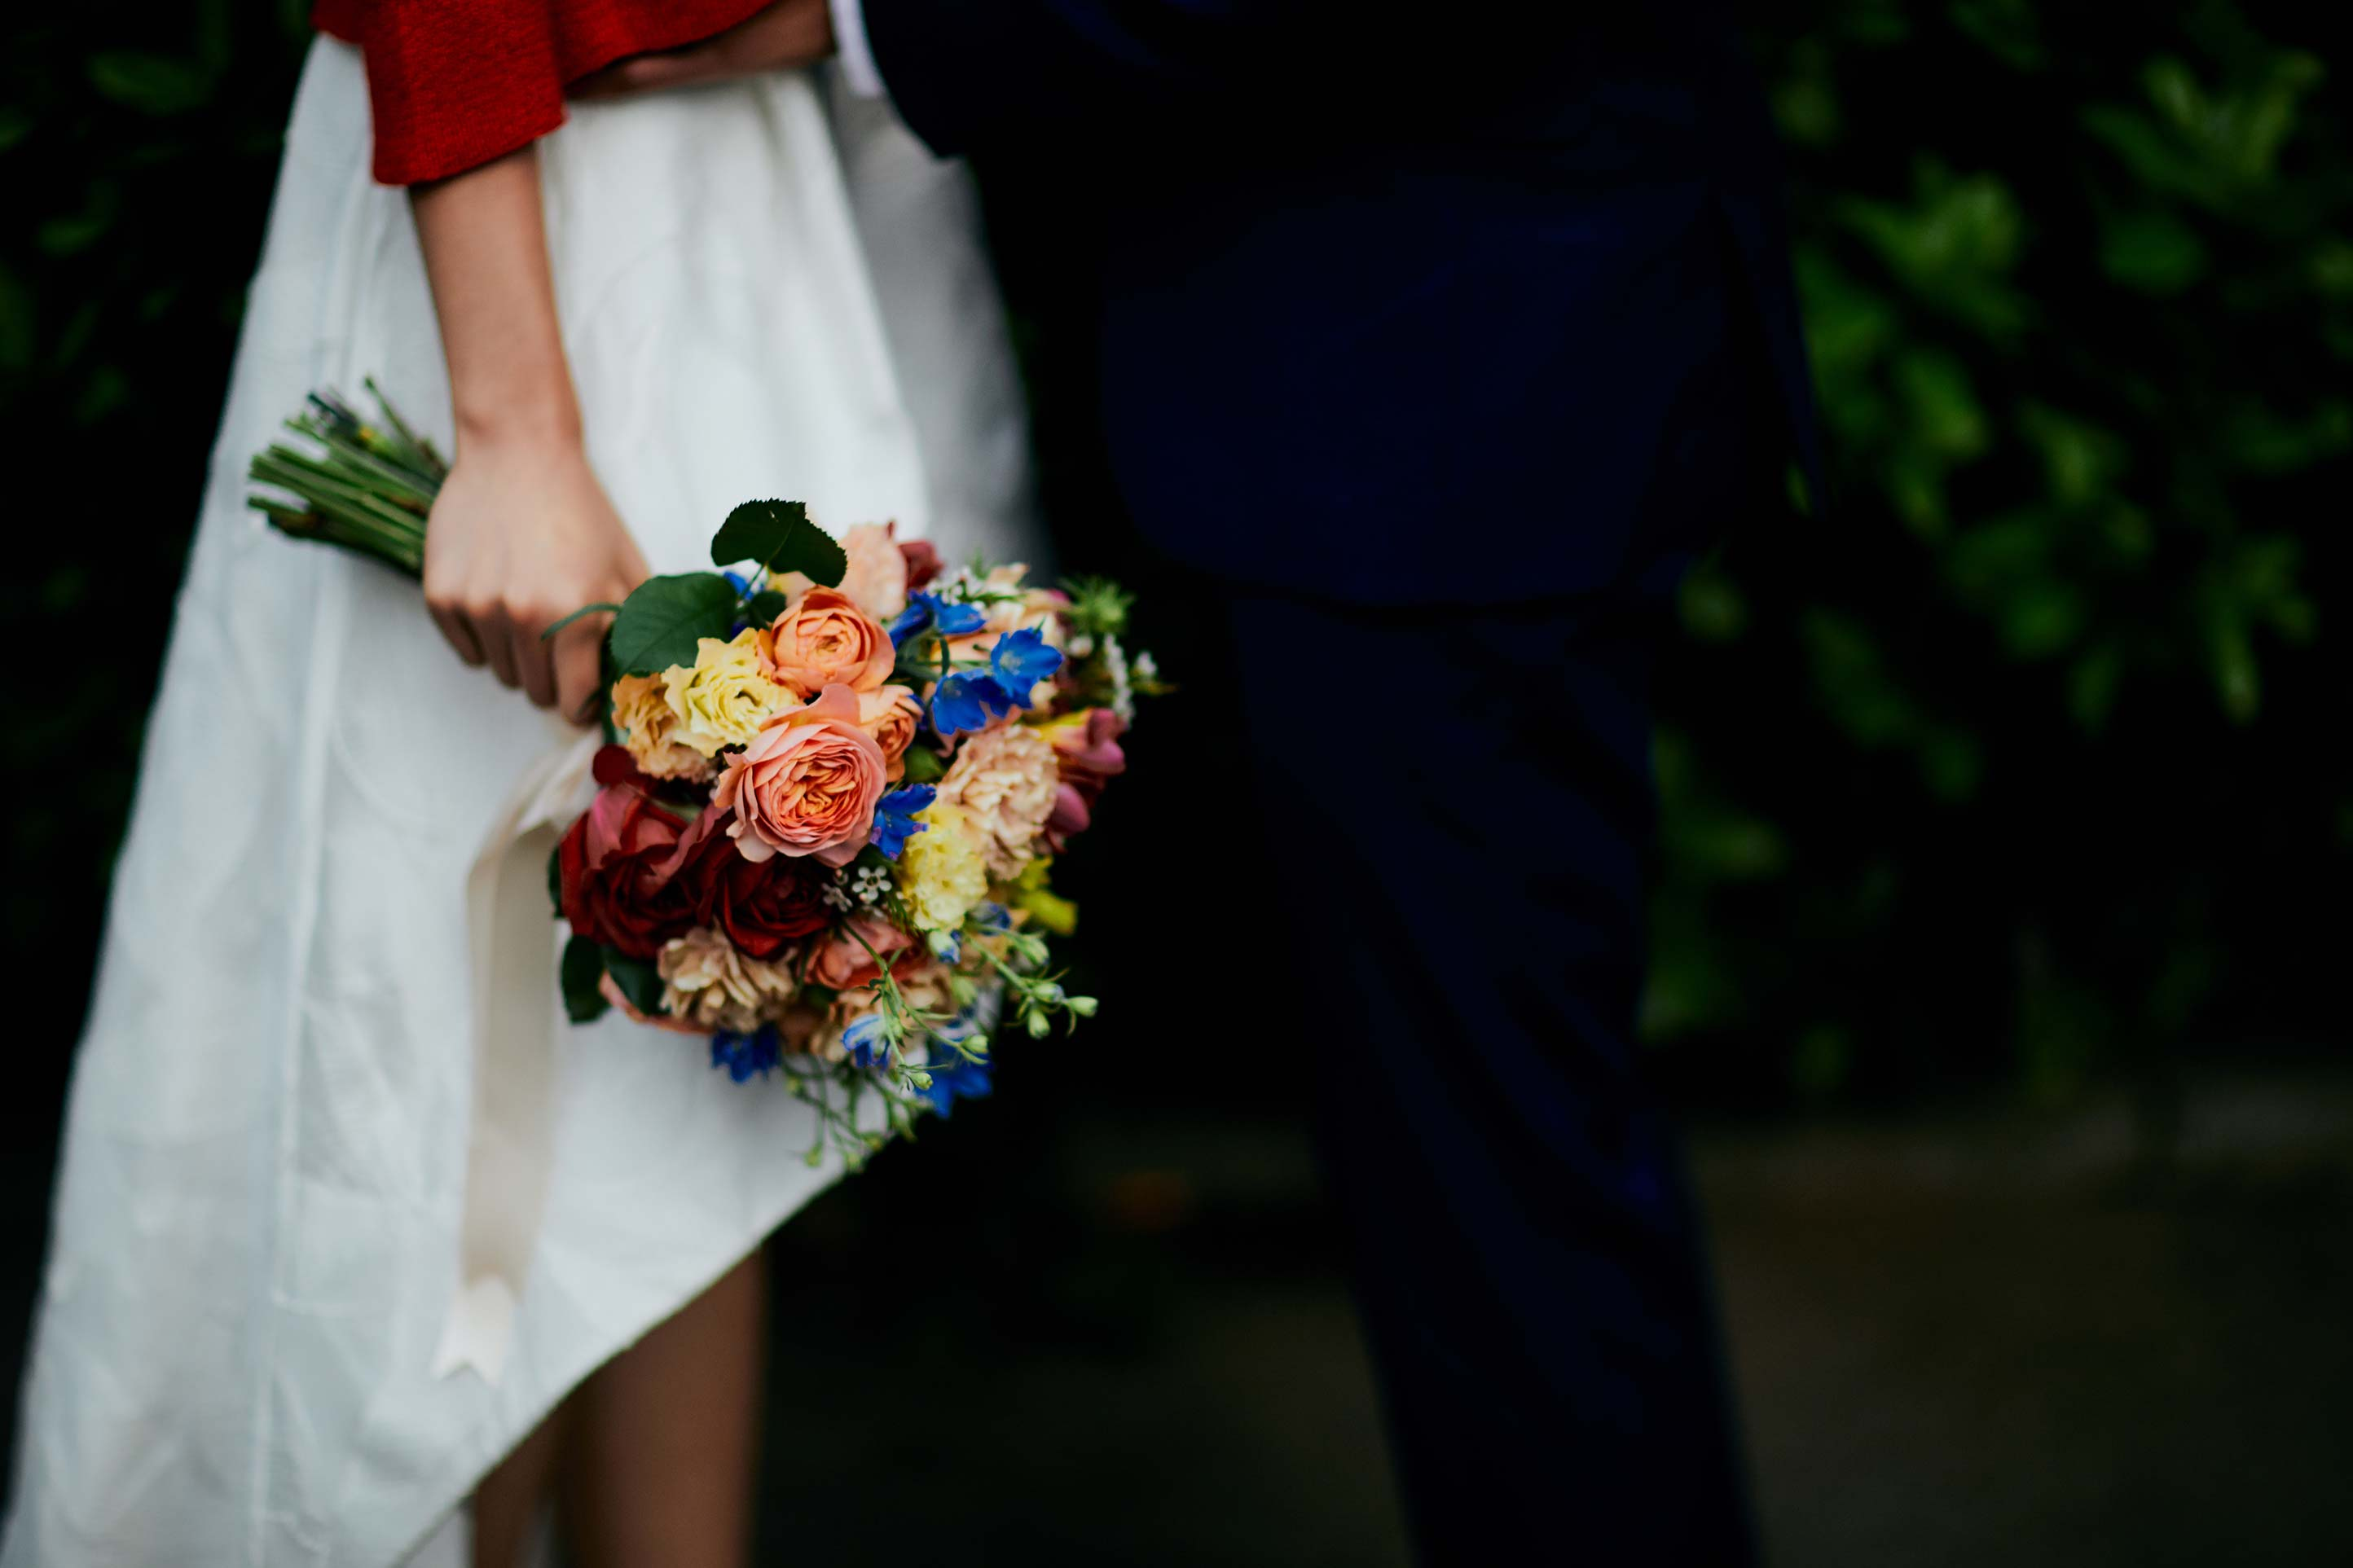 Melbourne-Wedding-Photographer-Kettle-Black-ACCA-bouquet